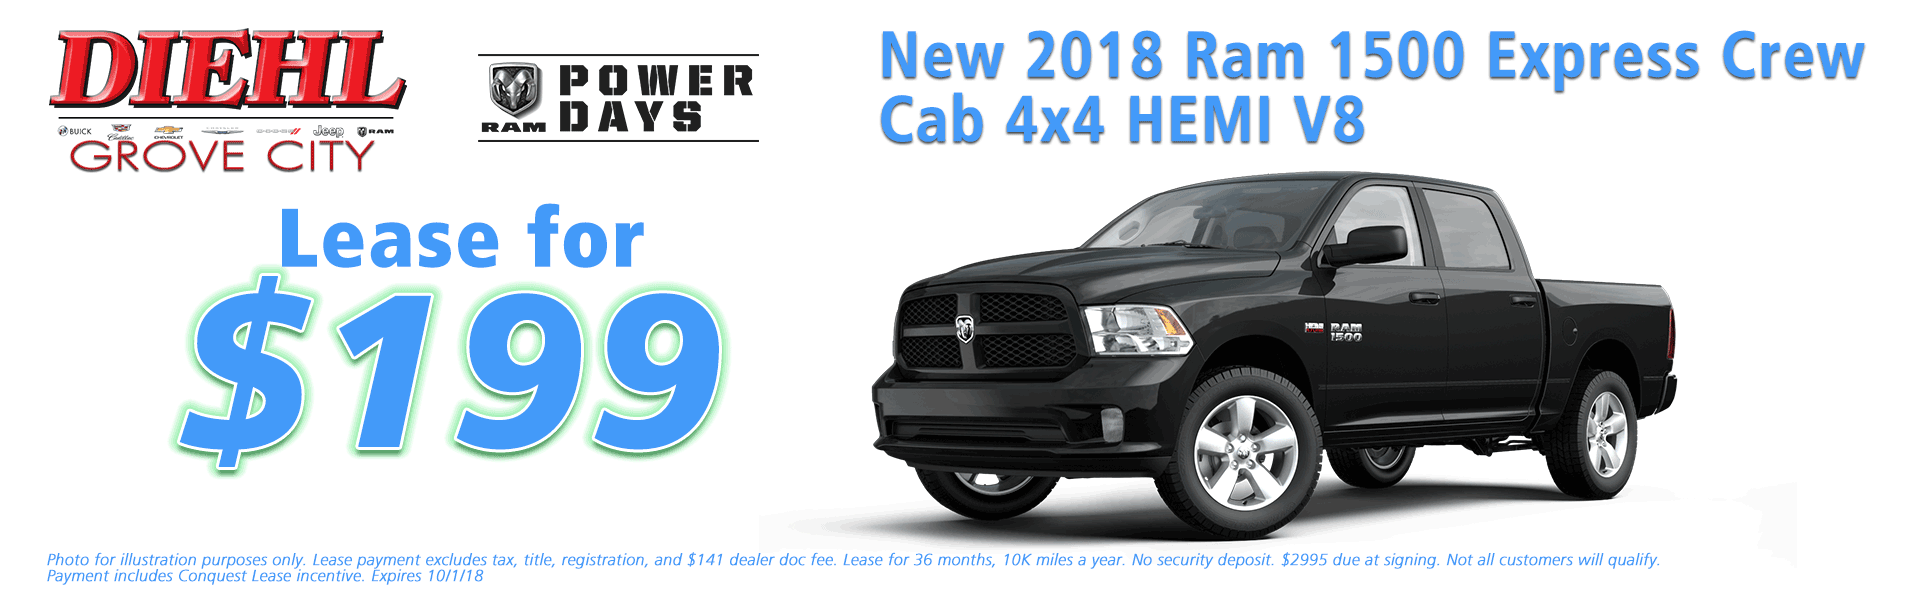 Diehl of Grove City Chrysler Jeep Dodge Ram Chevrolet Buick Cadillac Grove City, PA sales service parts collision repair NEW 2018 RAM 1500 EXPRESS CREW CAB 4X4 5'7